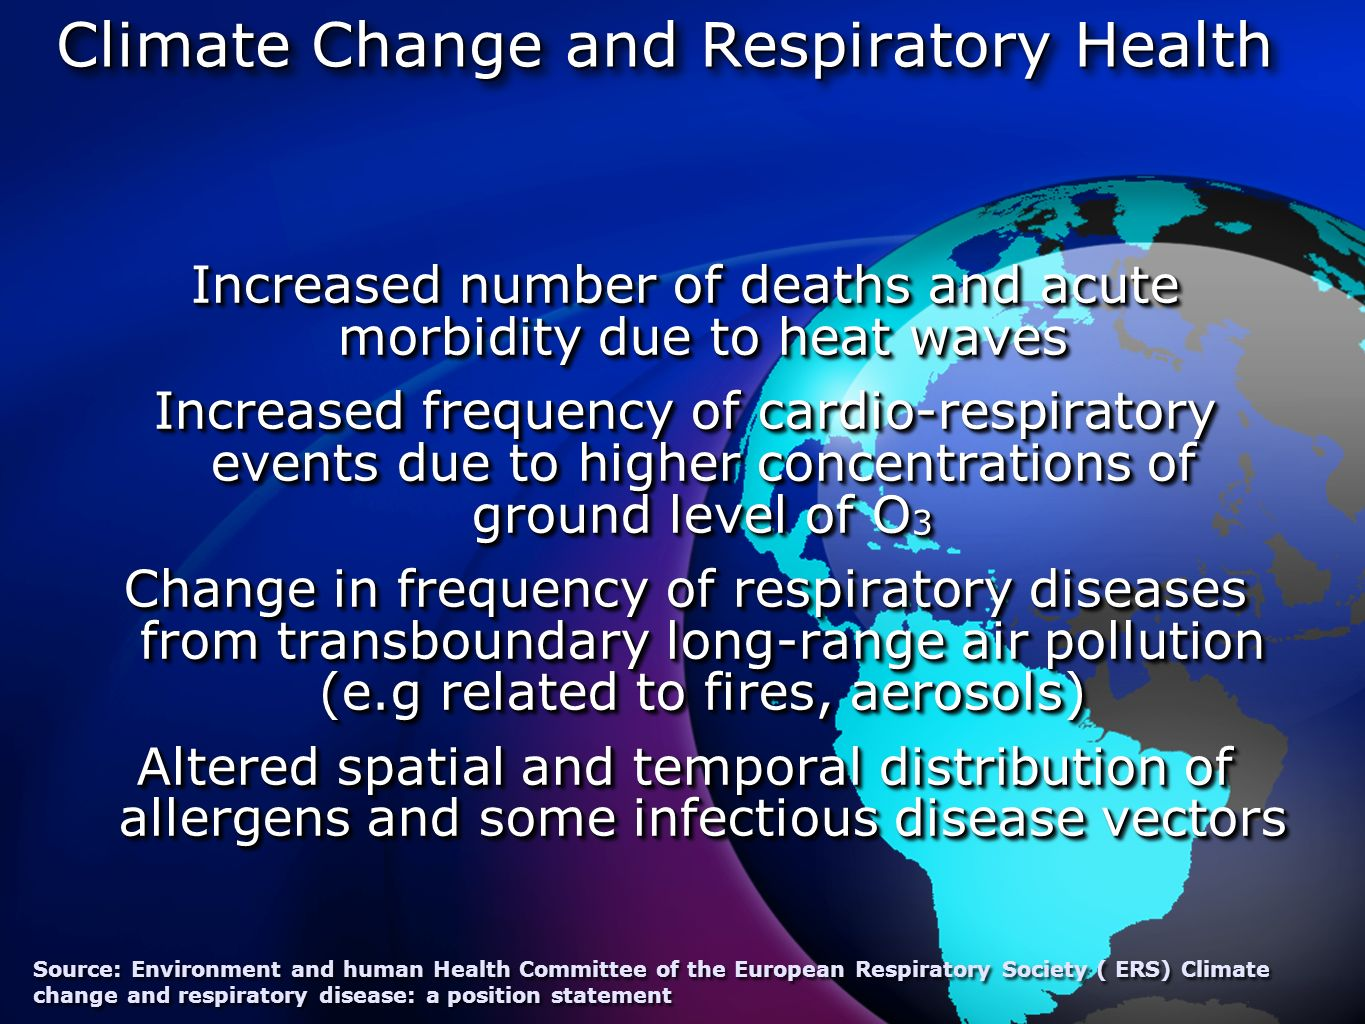 Climate Change and Respiratory Health Increased number of deaths and acute morbidity due to heat waves Increased frequency of cardio-respiratory events due to higher concentrations of ground level of O 3 Change in frequency of respiratory diseases from transboundary long-range air pollution (e.g related to fires, aerosols) Altered spatial and temporal distribution of allergens and some infectious disease vectors Increased number of deaths and acute morbidity due to heat waves Increased frequency of cardio-respiratory events due to higher concentrations of ground level of O 3 Change in frequency of respiratory diseases from transboundary long-range air pollution (e.g related to fires, aerosols) Altered spatial and temporal distribution of allergens and some infectious disease vectors Source: Environment and human Health Committee of the European Respiratory Society ( ERS) Climate change and respiratory disease: a position statement